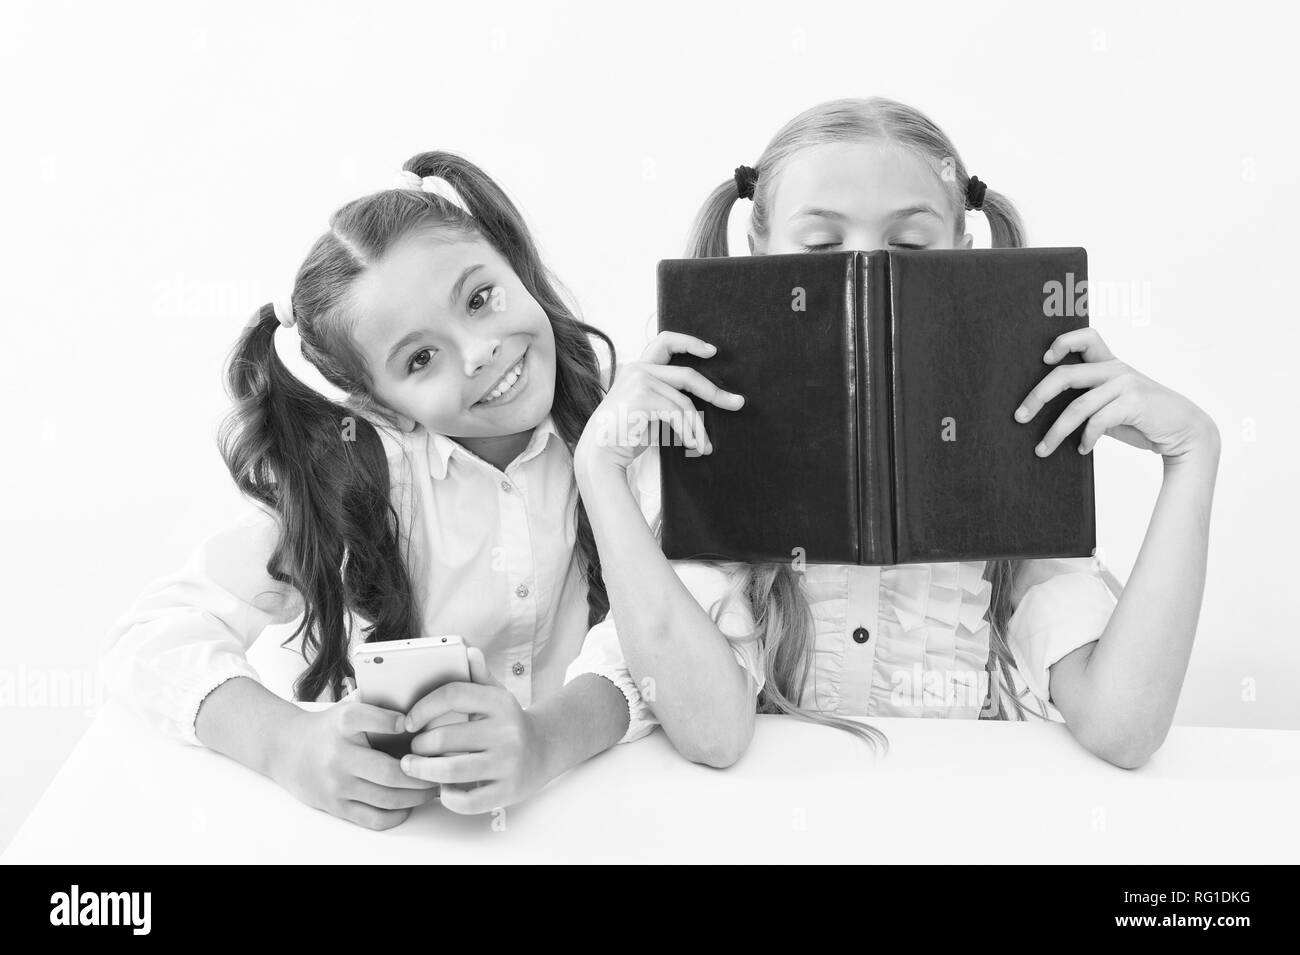 Old school against modern. Schoolgirl hold mobile phone modern smartphone while her friend enjoy old book as analog data storage. Technology against experience. New generation educational demands. Stock Photo